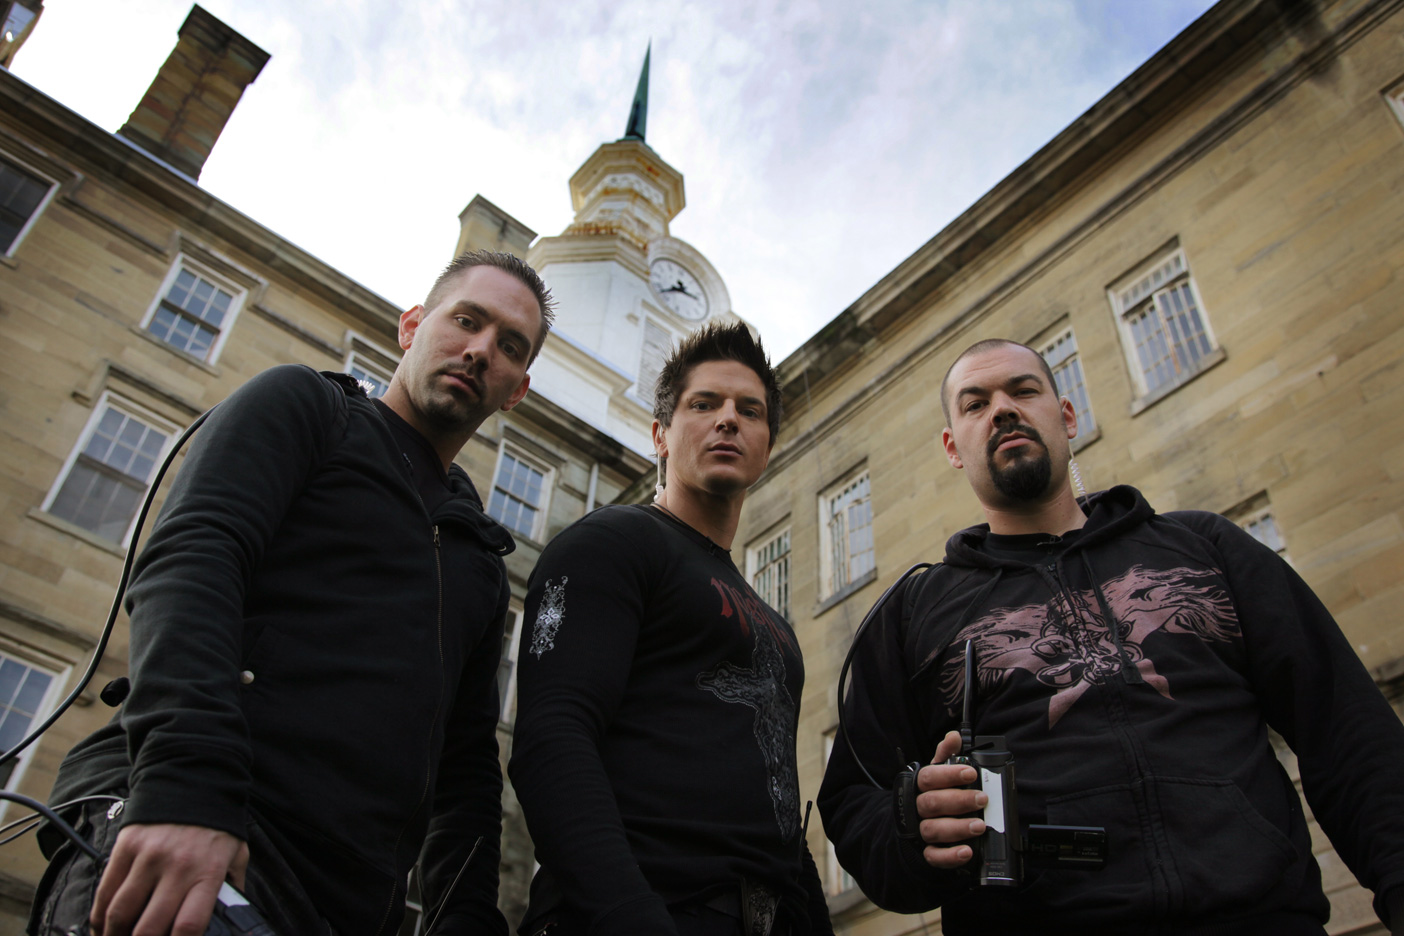 ghost adventures - Ghost Adventures Wallpaper (33166085) - Fanpop